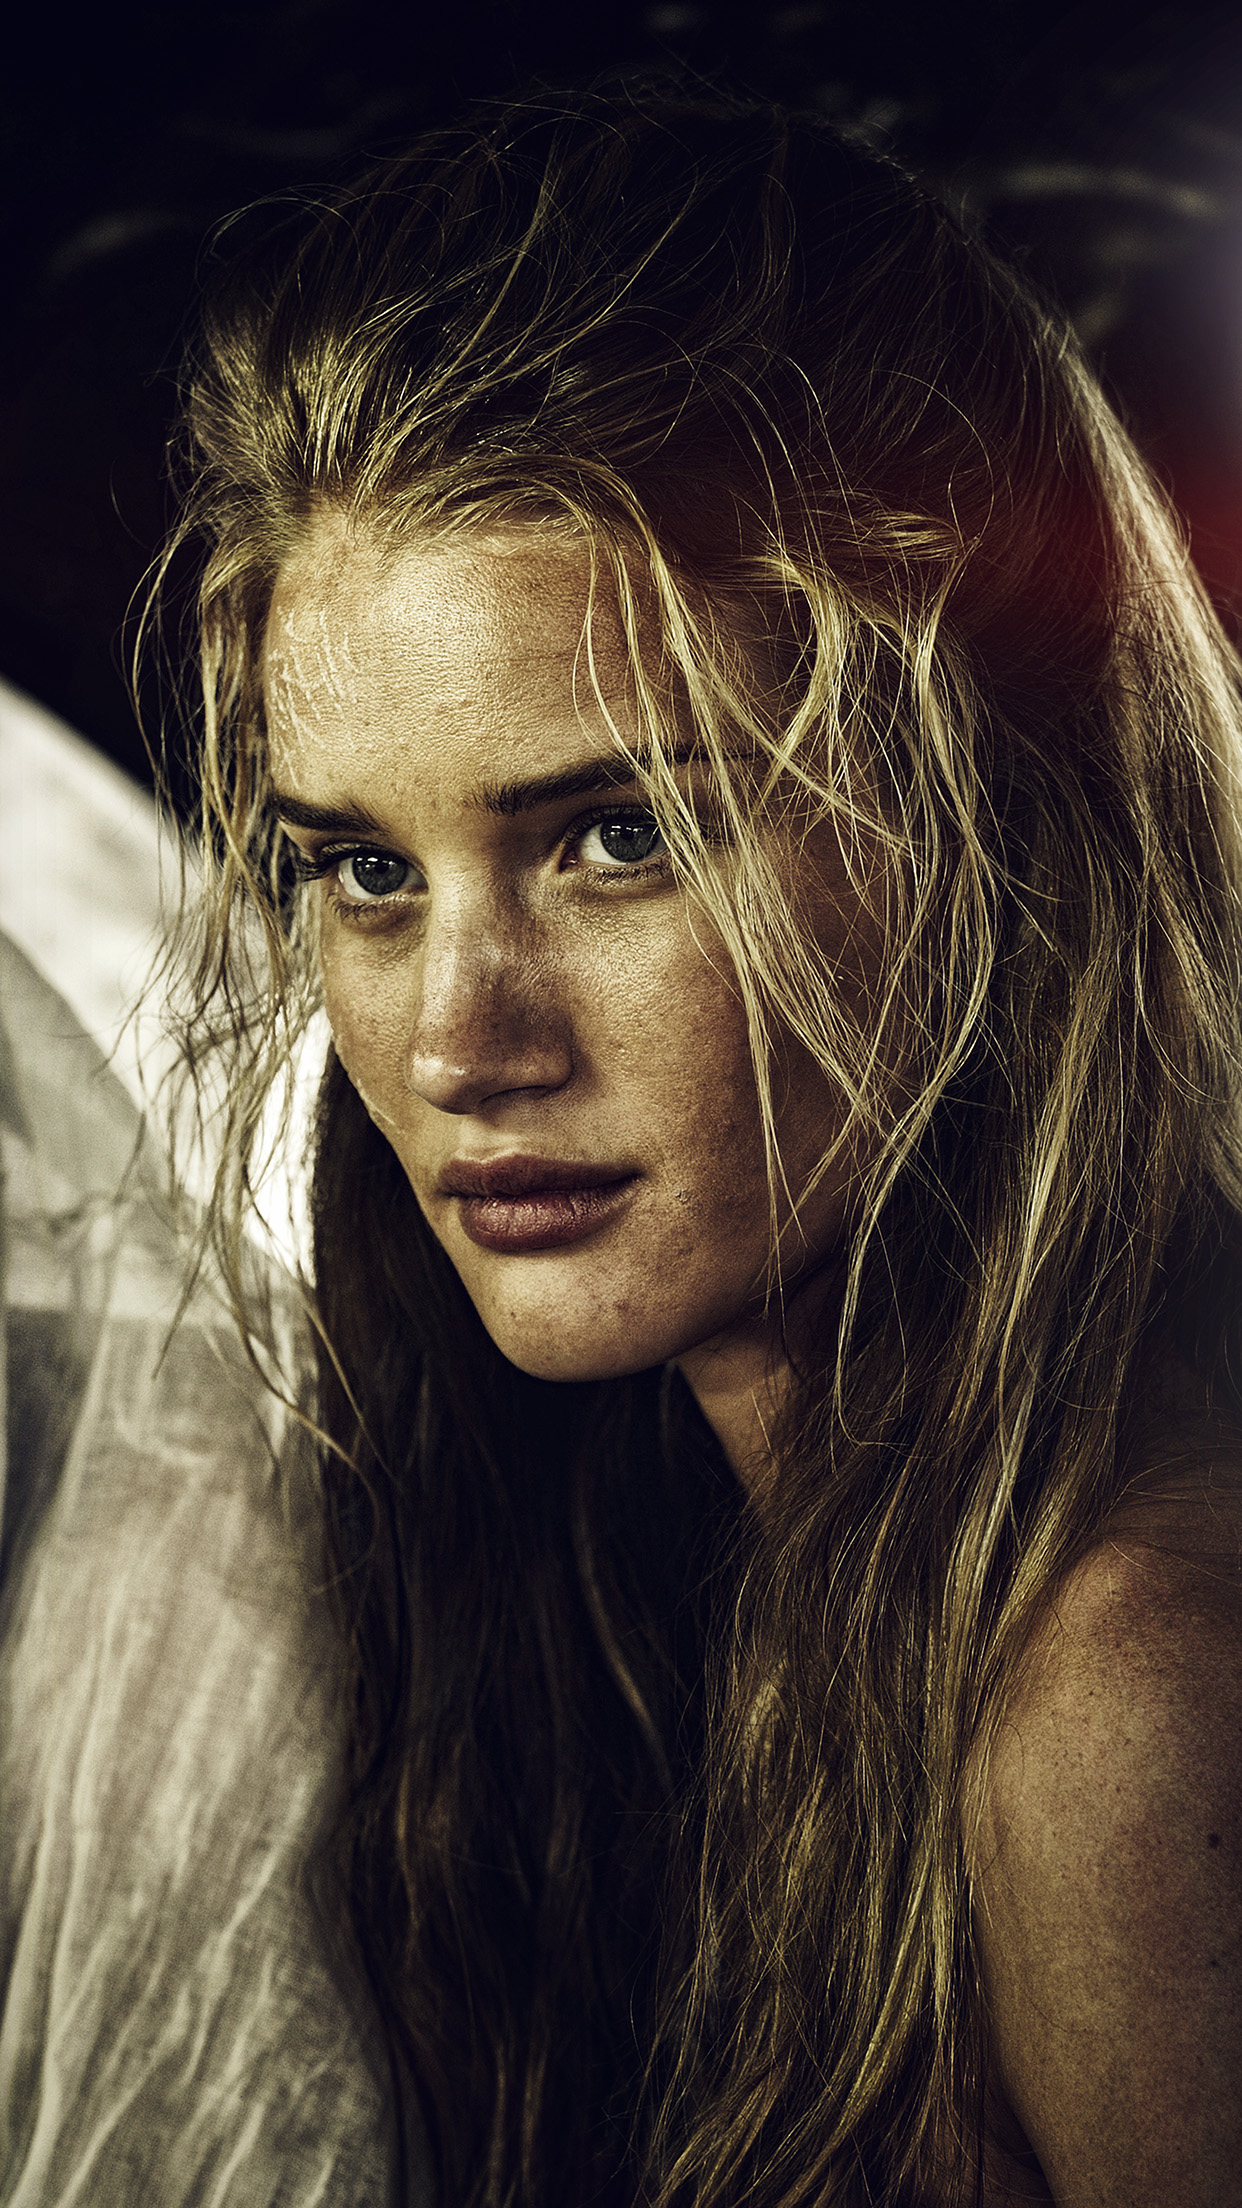 iphone6papers - hf62-madmax-rosie-huntington-whiteley-film-girl